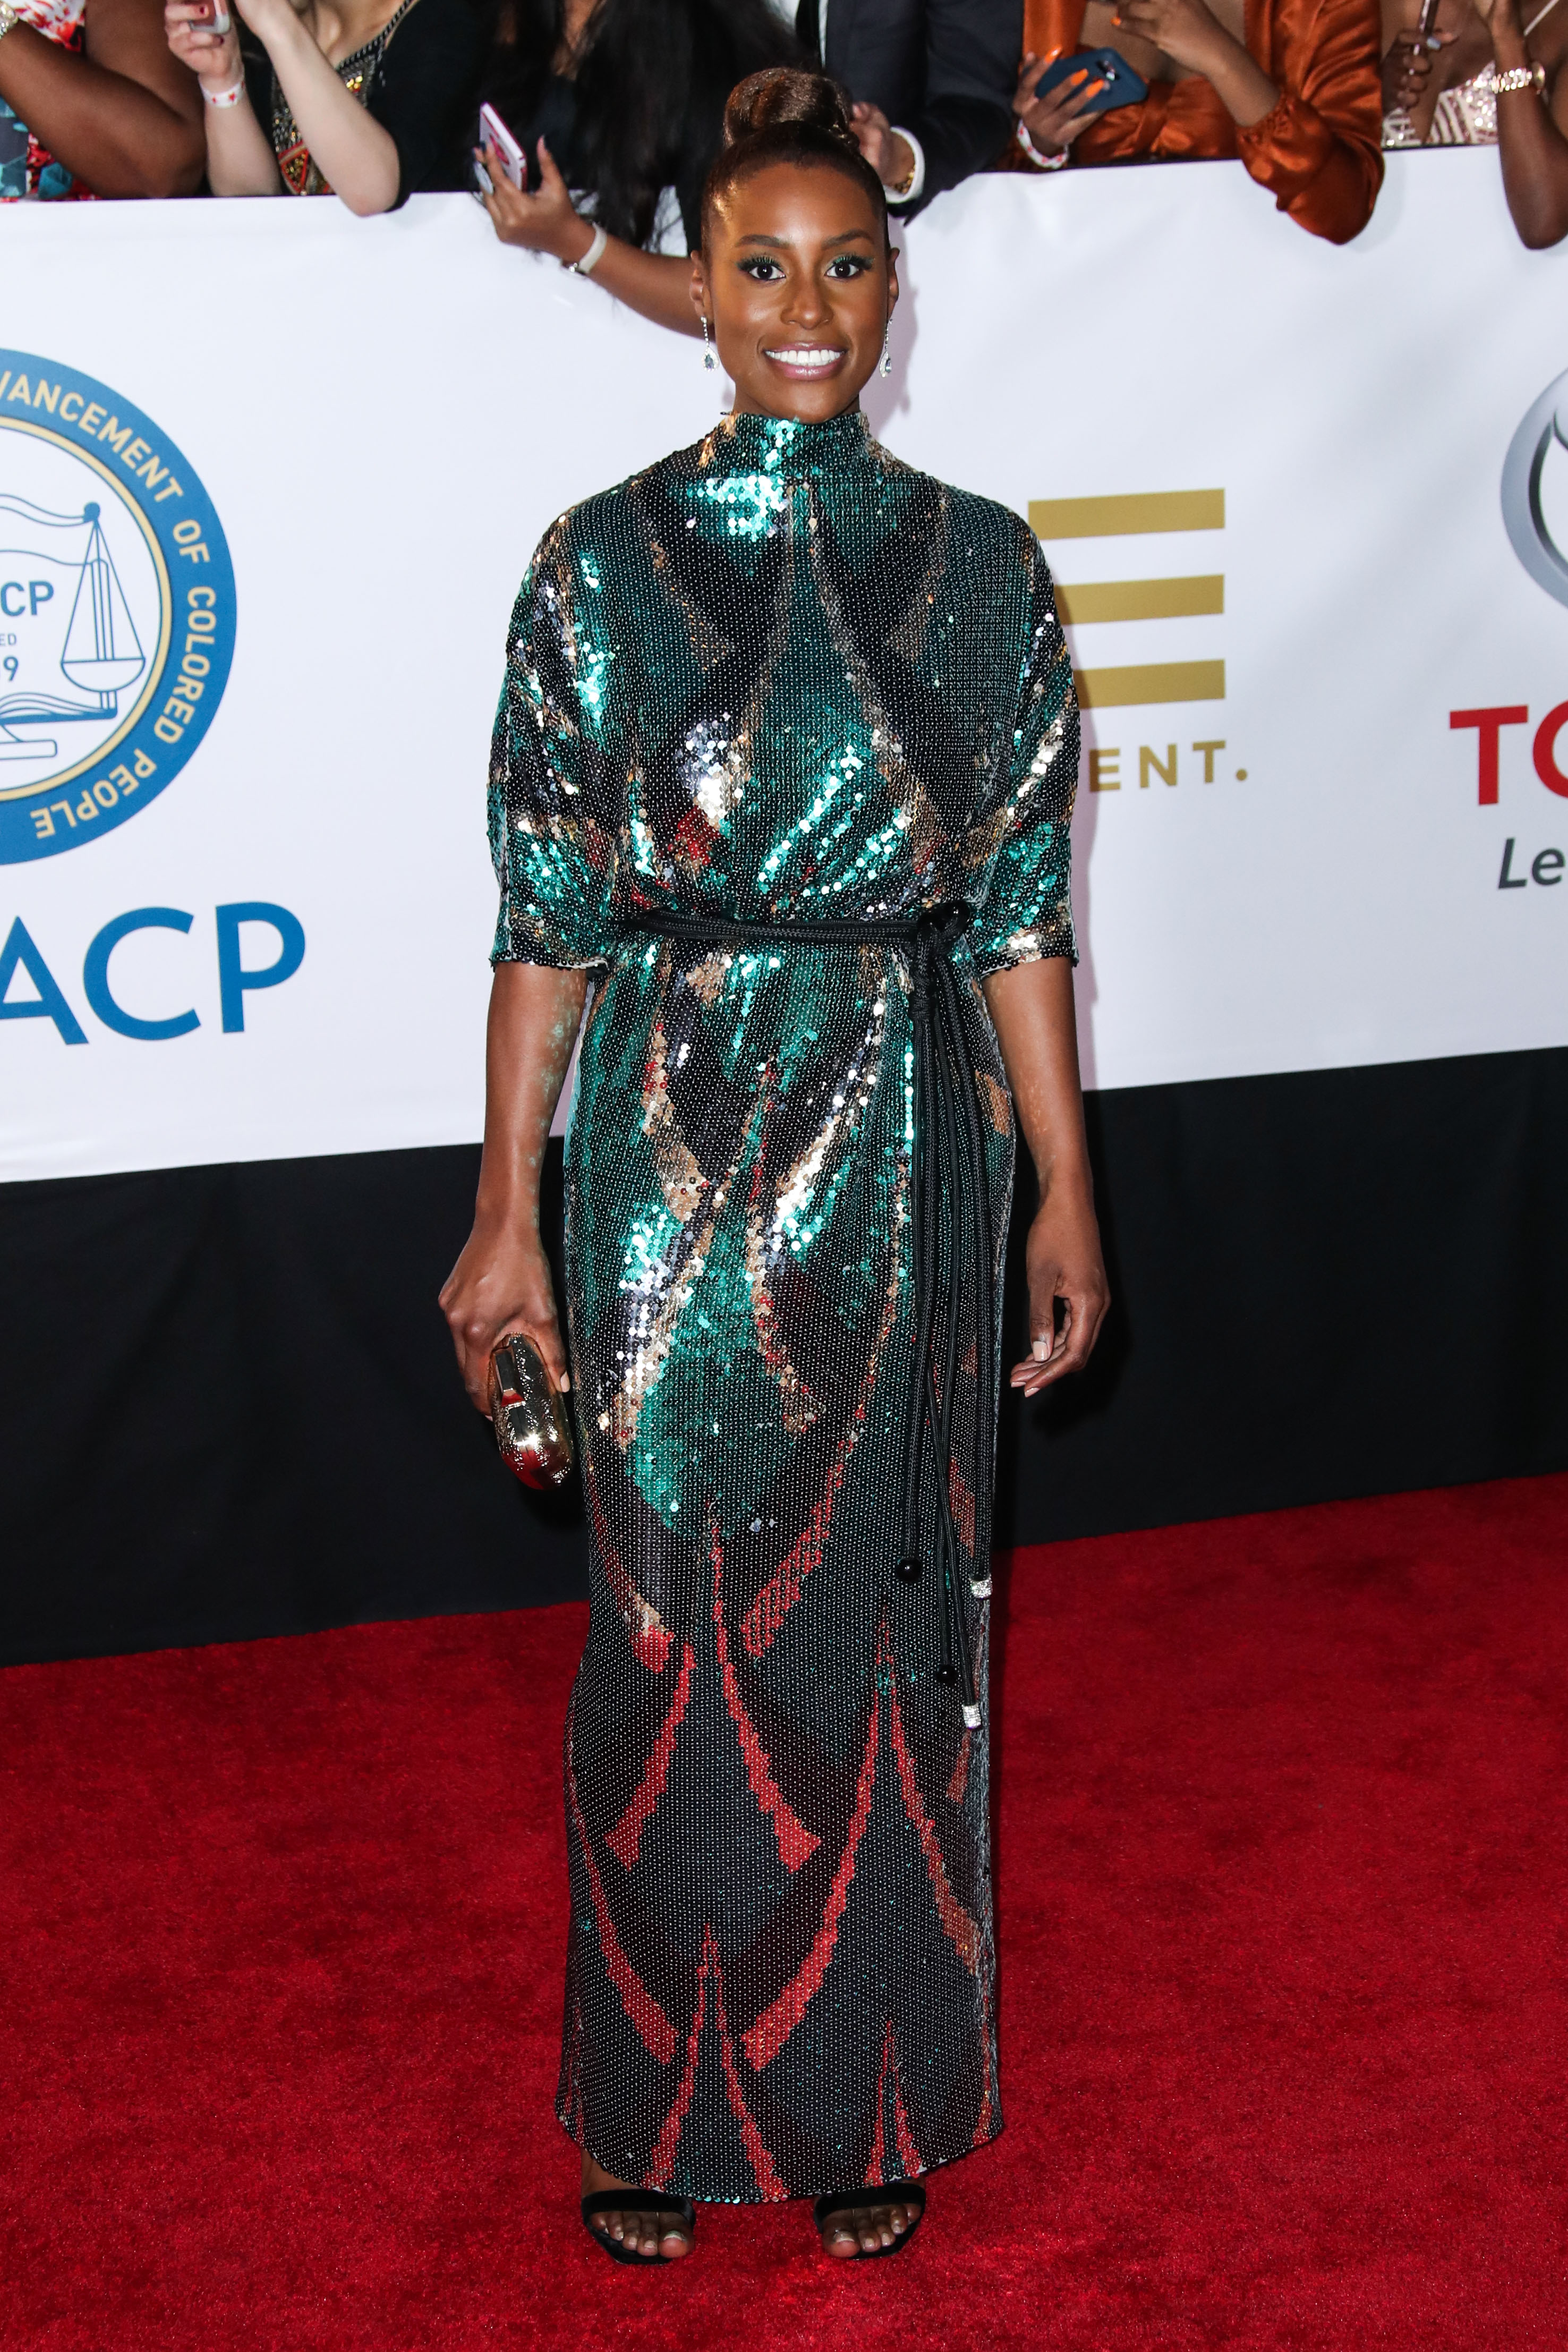 Issa RaeNAACP Image Awards, Arrivals, Los Angeles, USA - 15 Jan 2018WEARING MARC JACOBS SAME OUTFIT AS CATWALK MODEL *9052045de